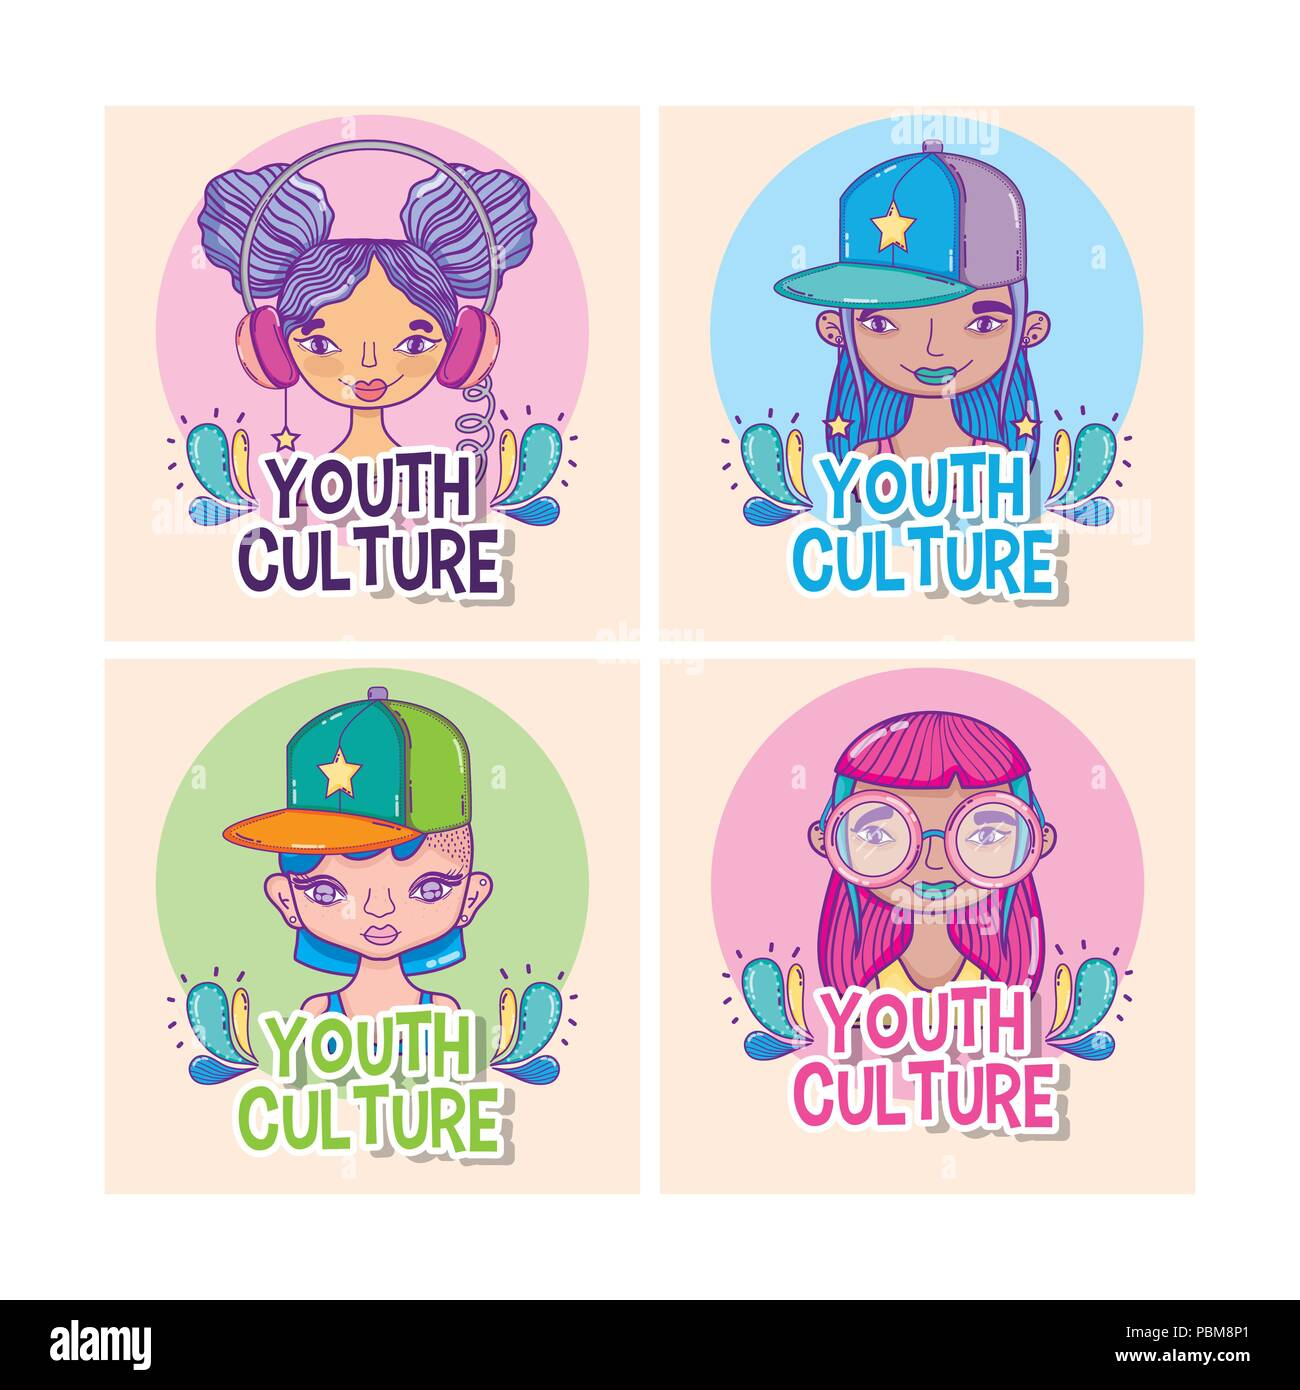 Set of youth culture cartoons - Stock Image